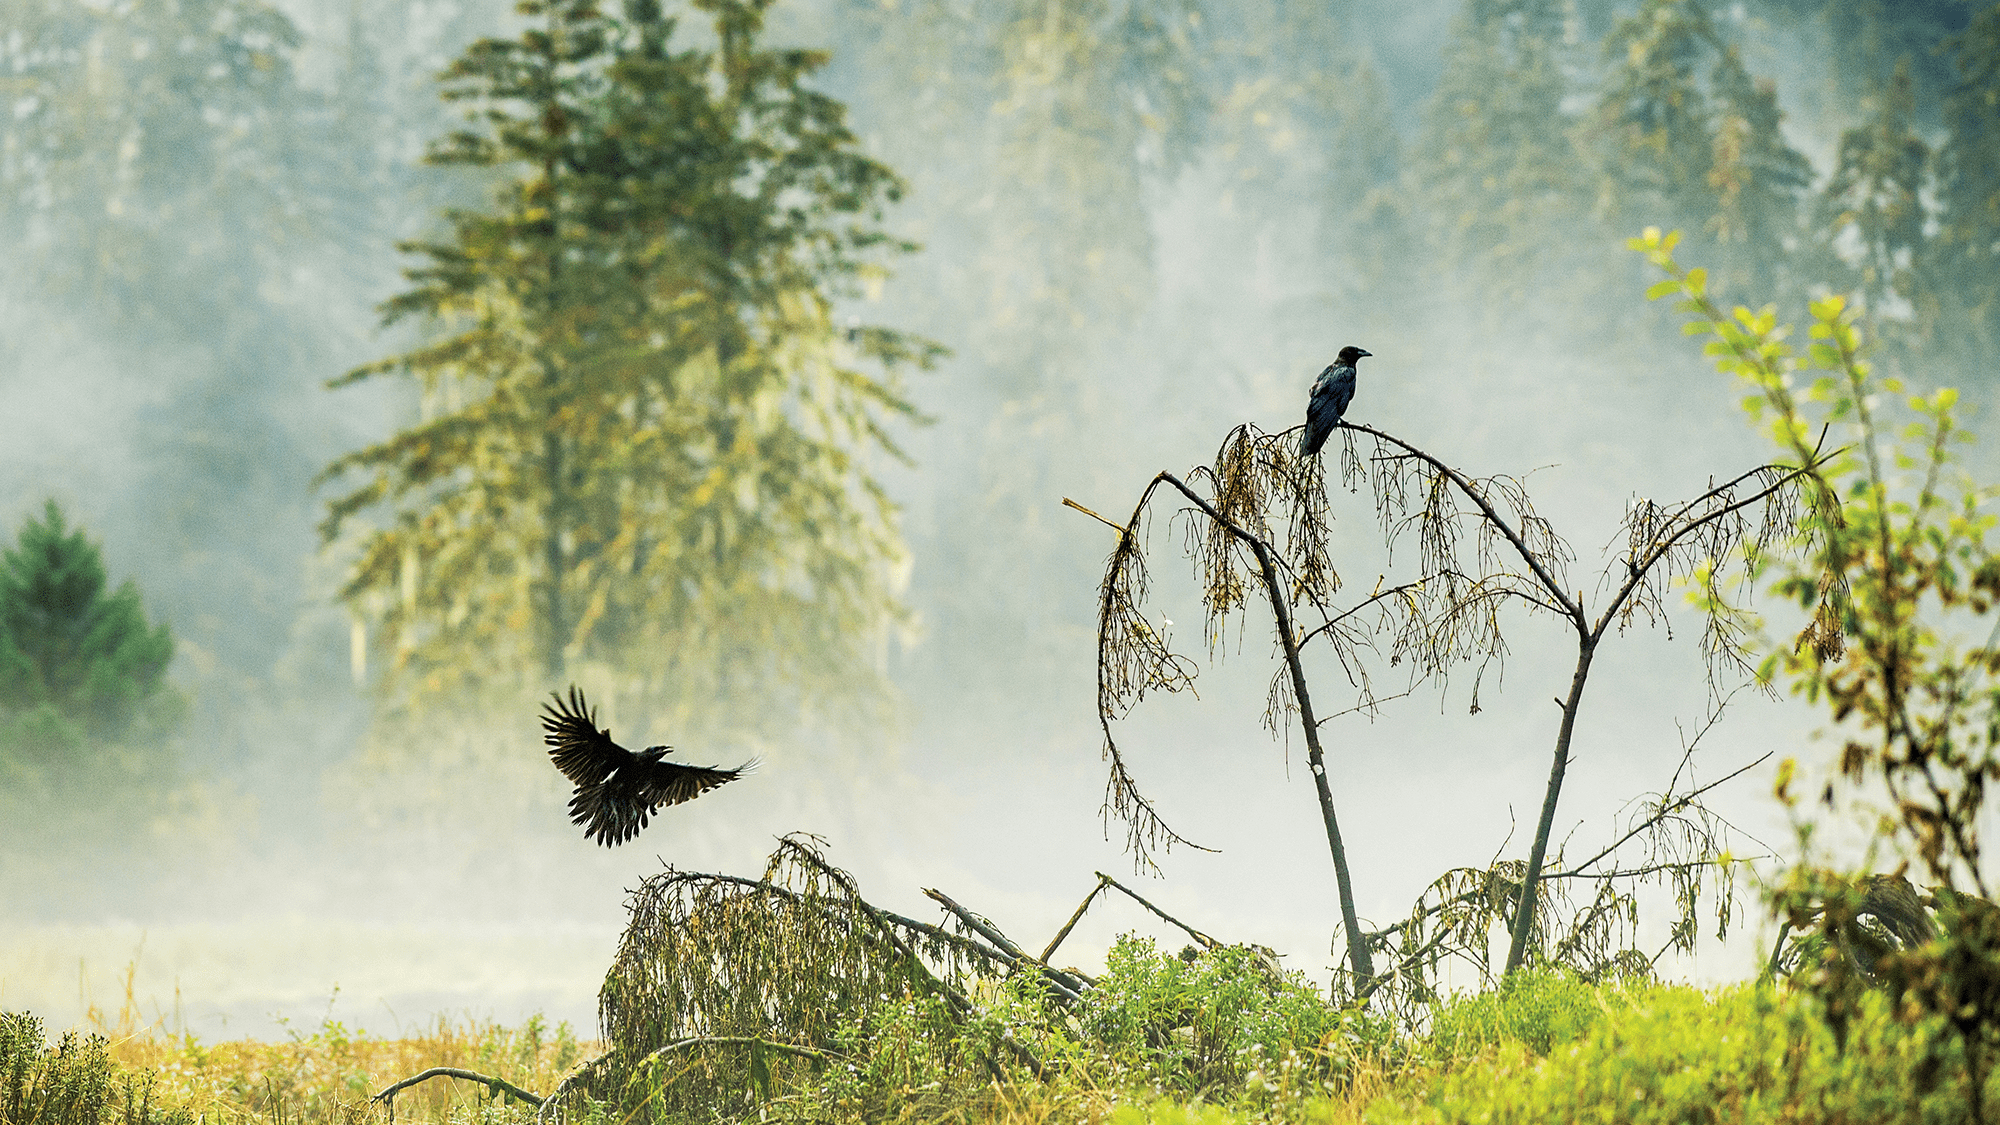 Two Corvids April Bencze ctc2018